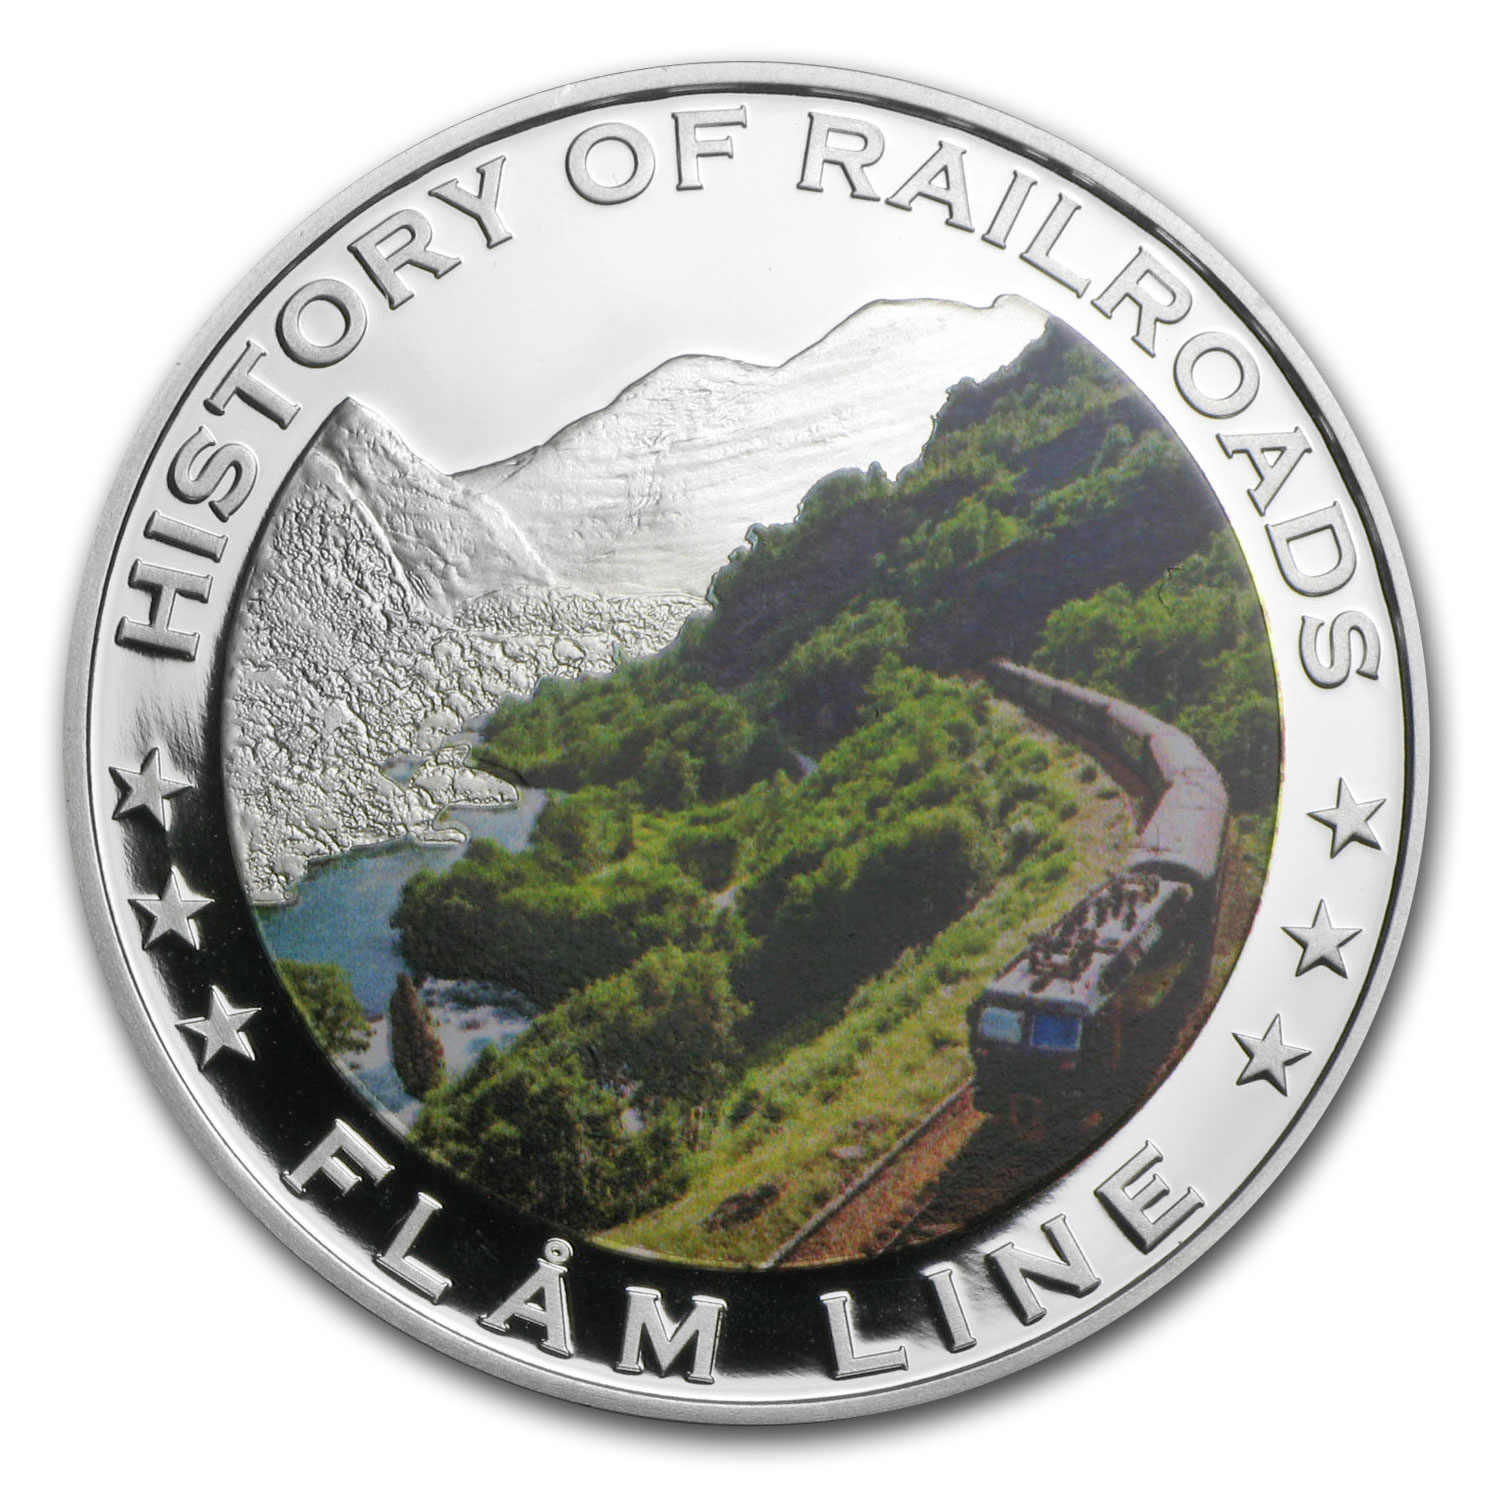 2011 Liberia Silver $5 Flam Line Railroad Proof